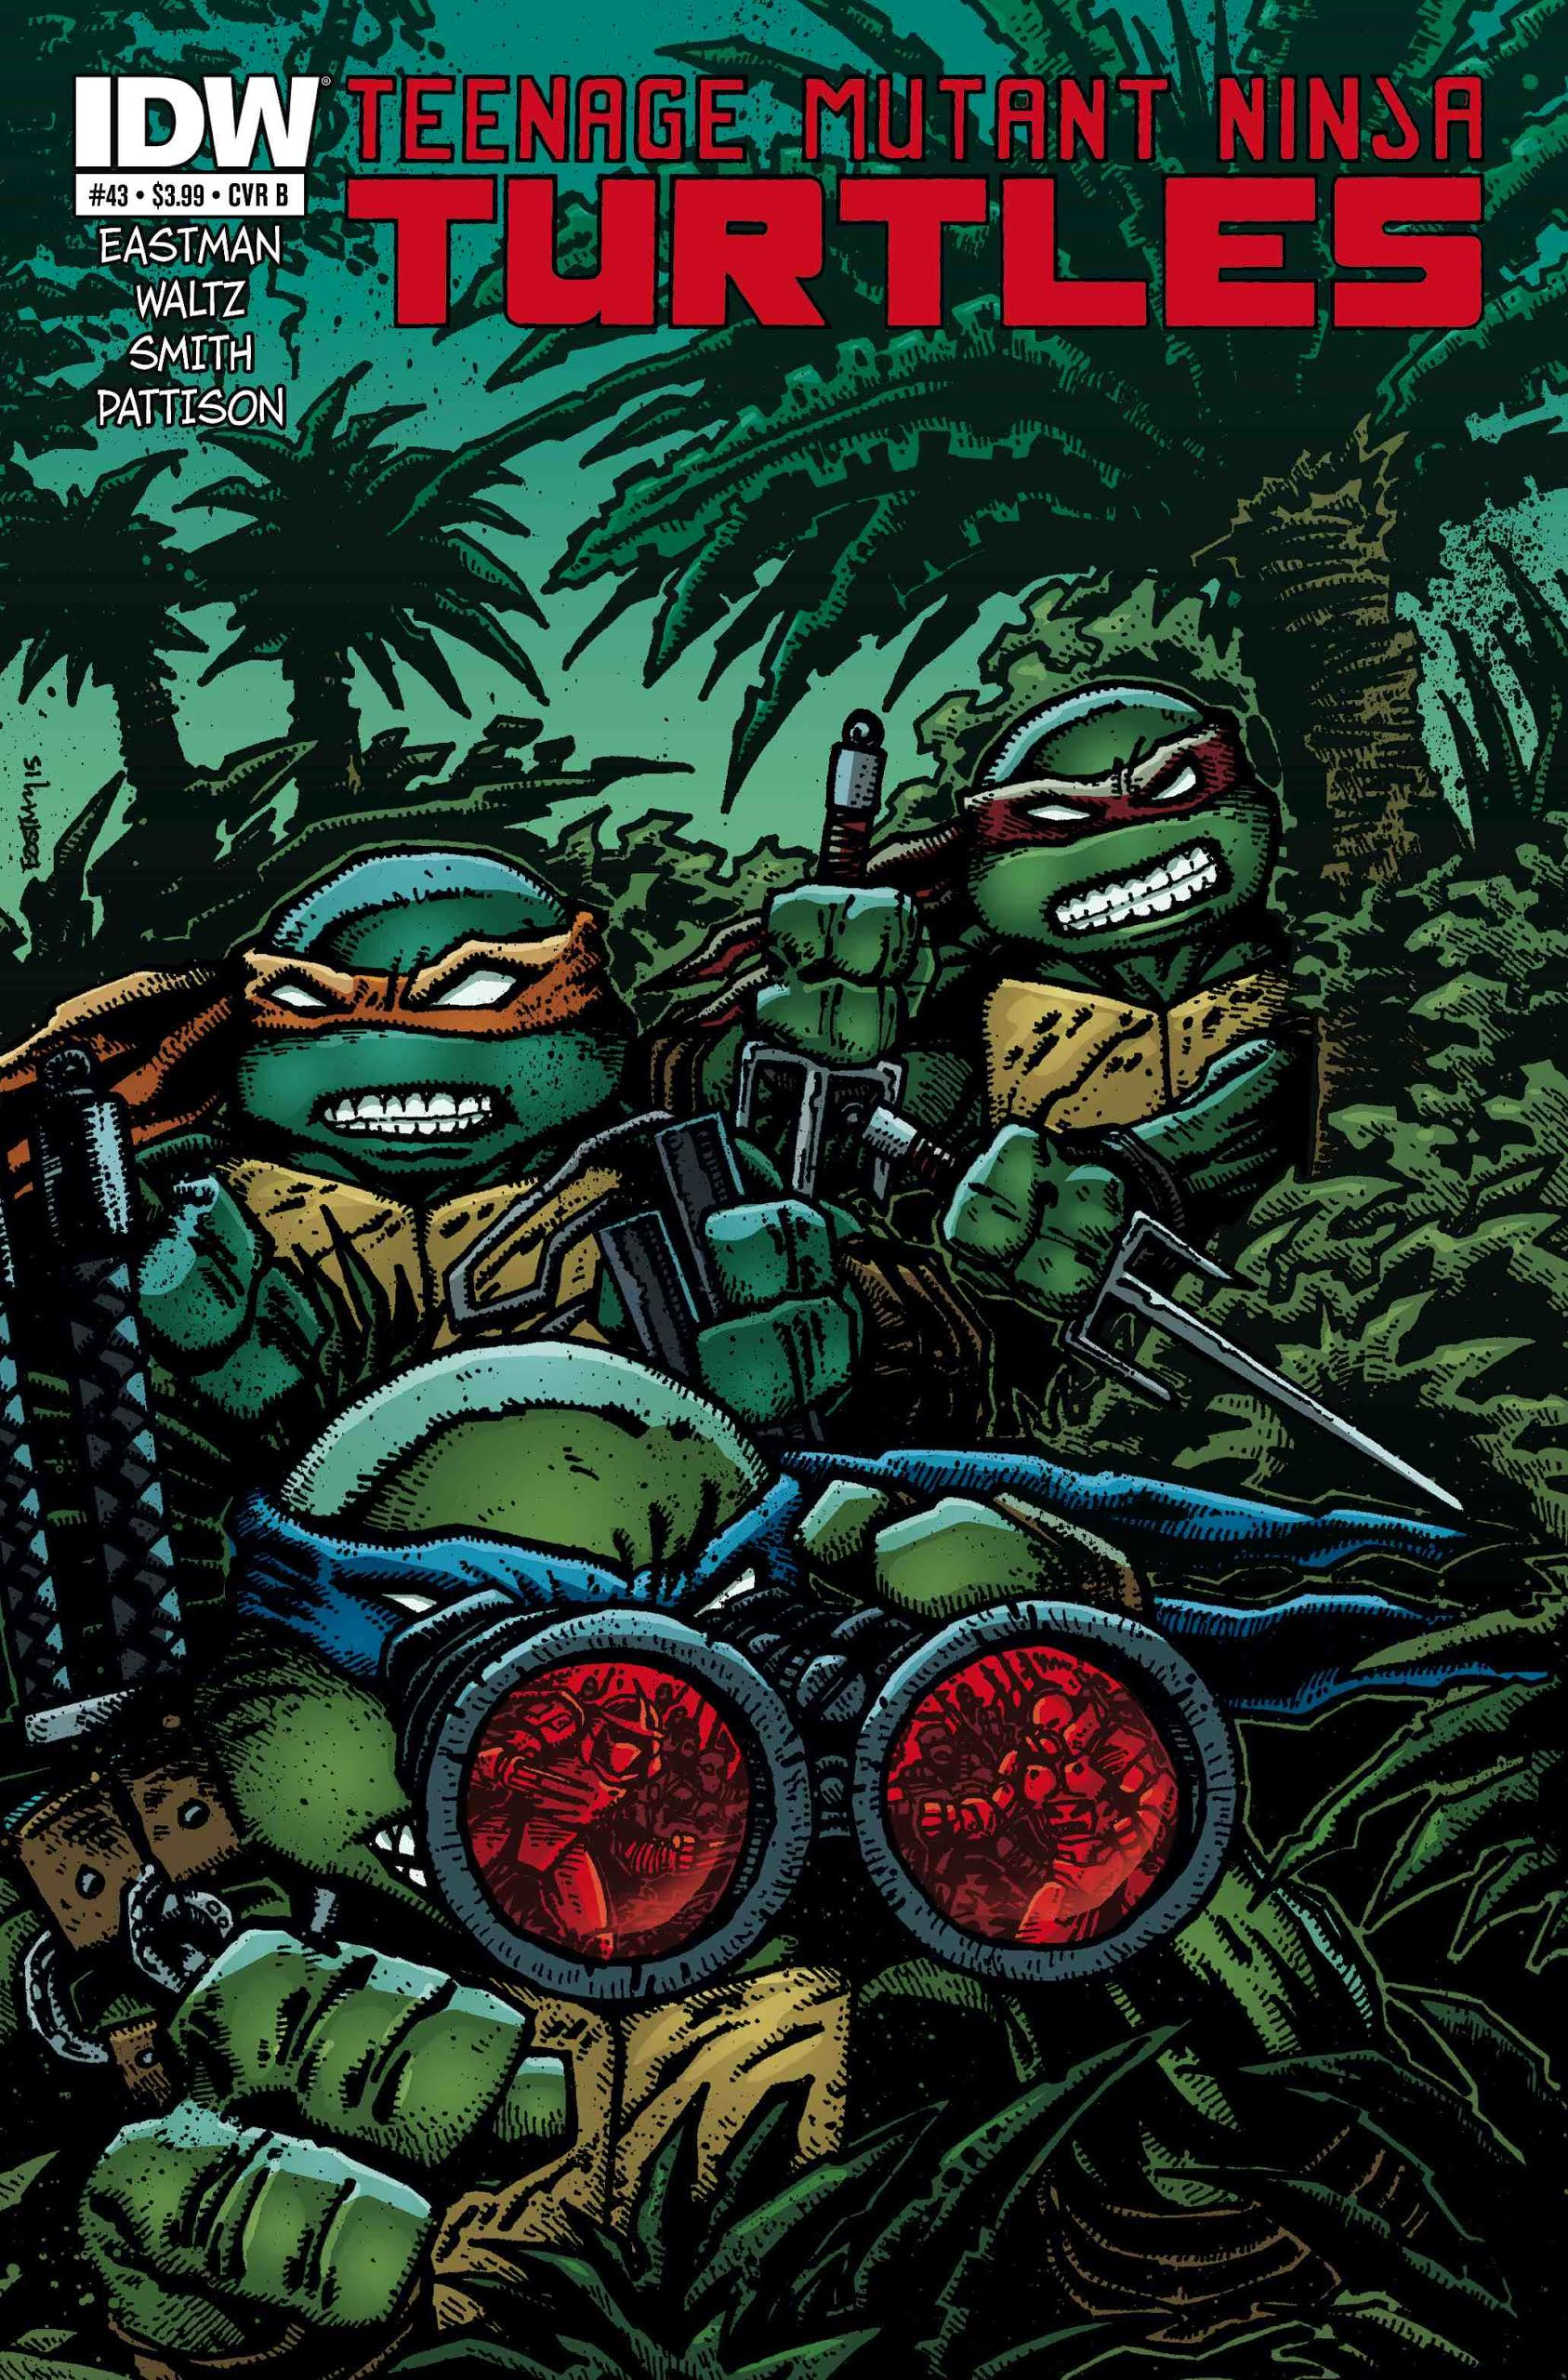 Teenage Mutant Ninja Turtles #43 cover by Kevin Eastman